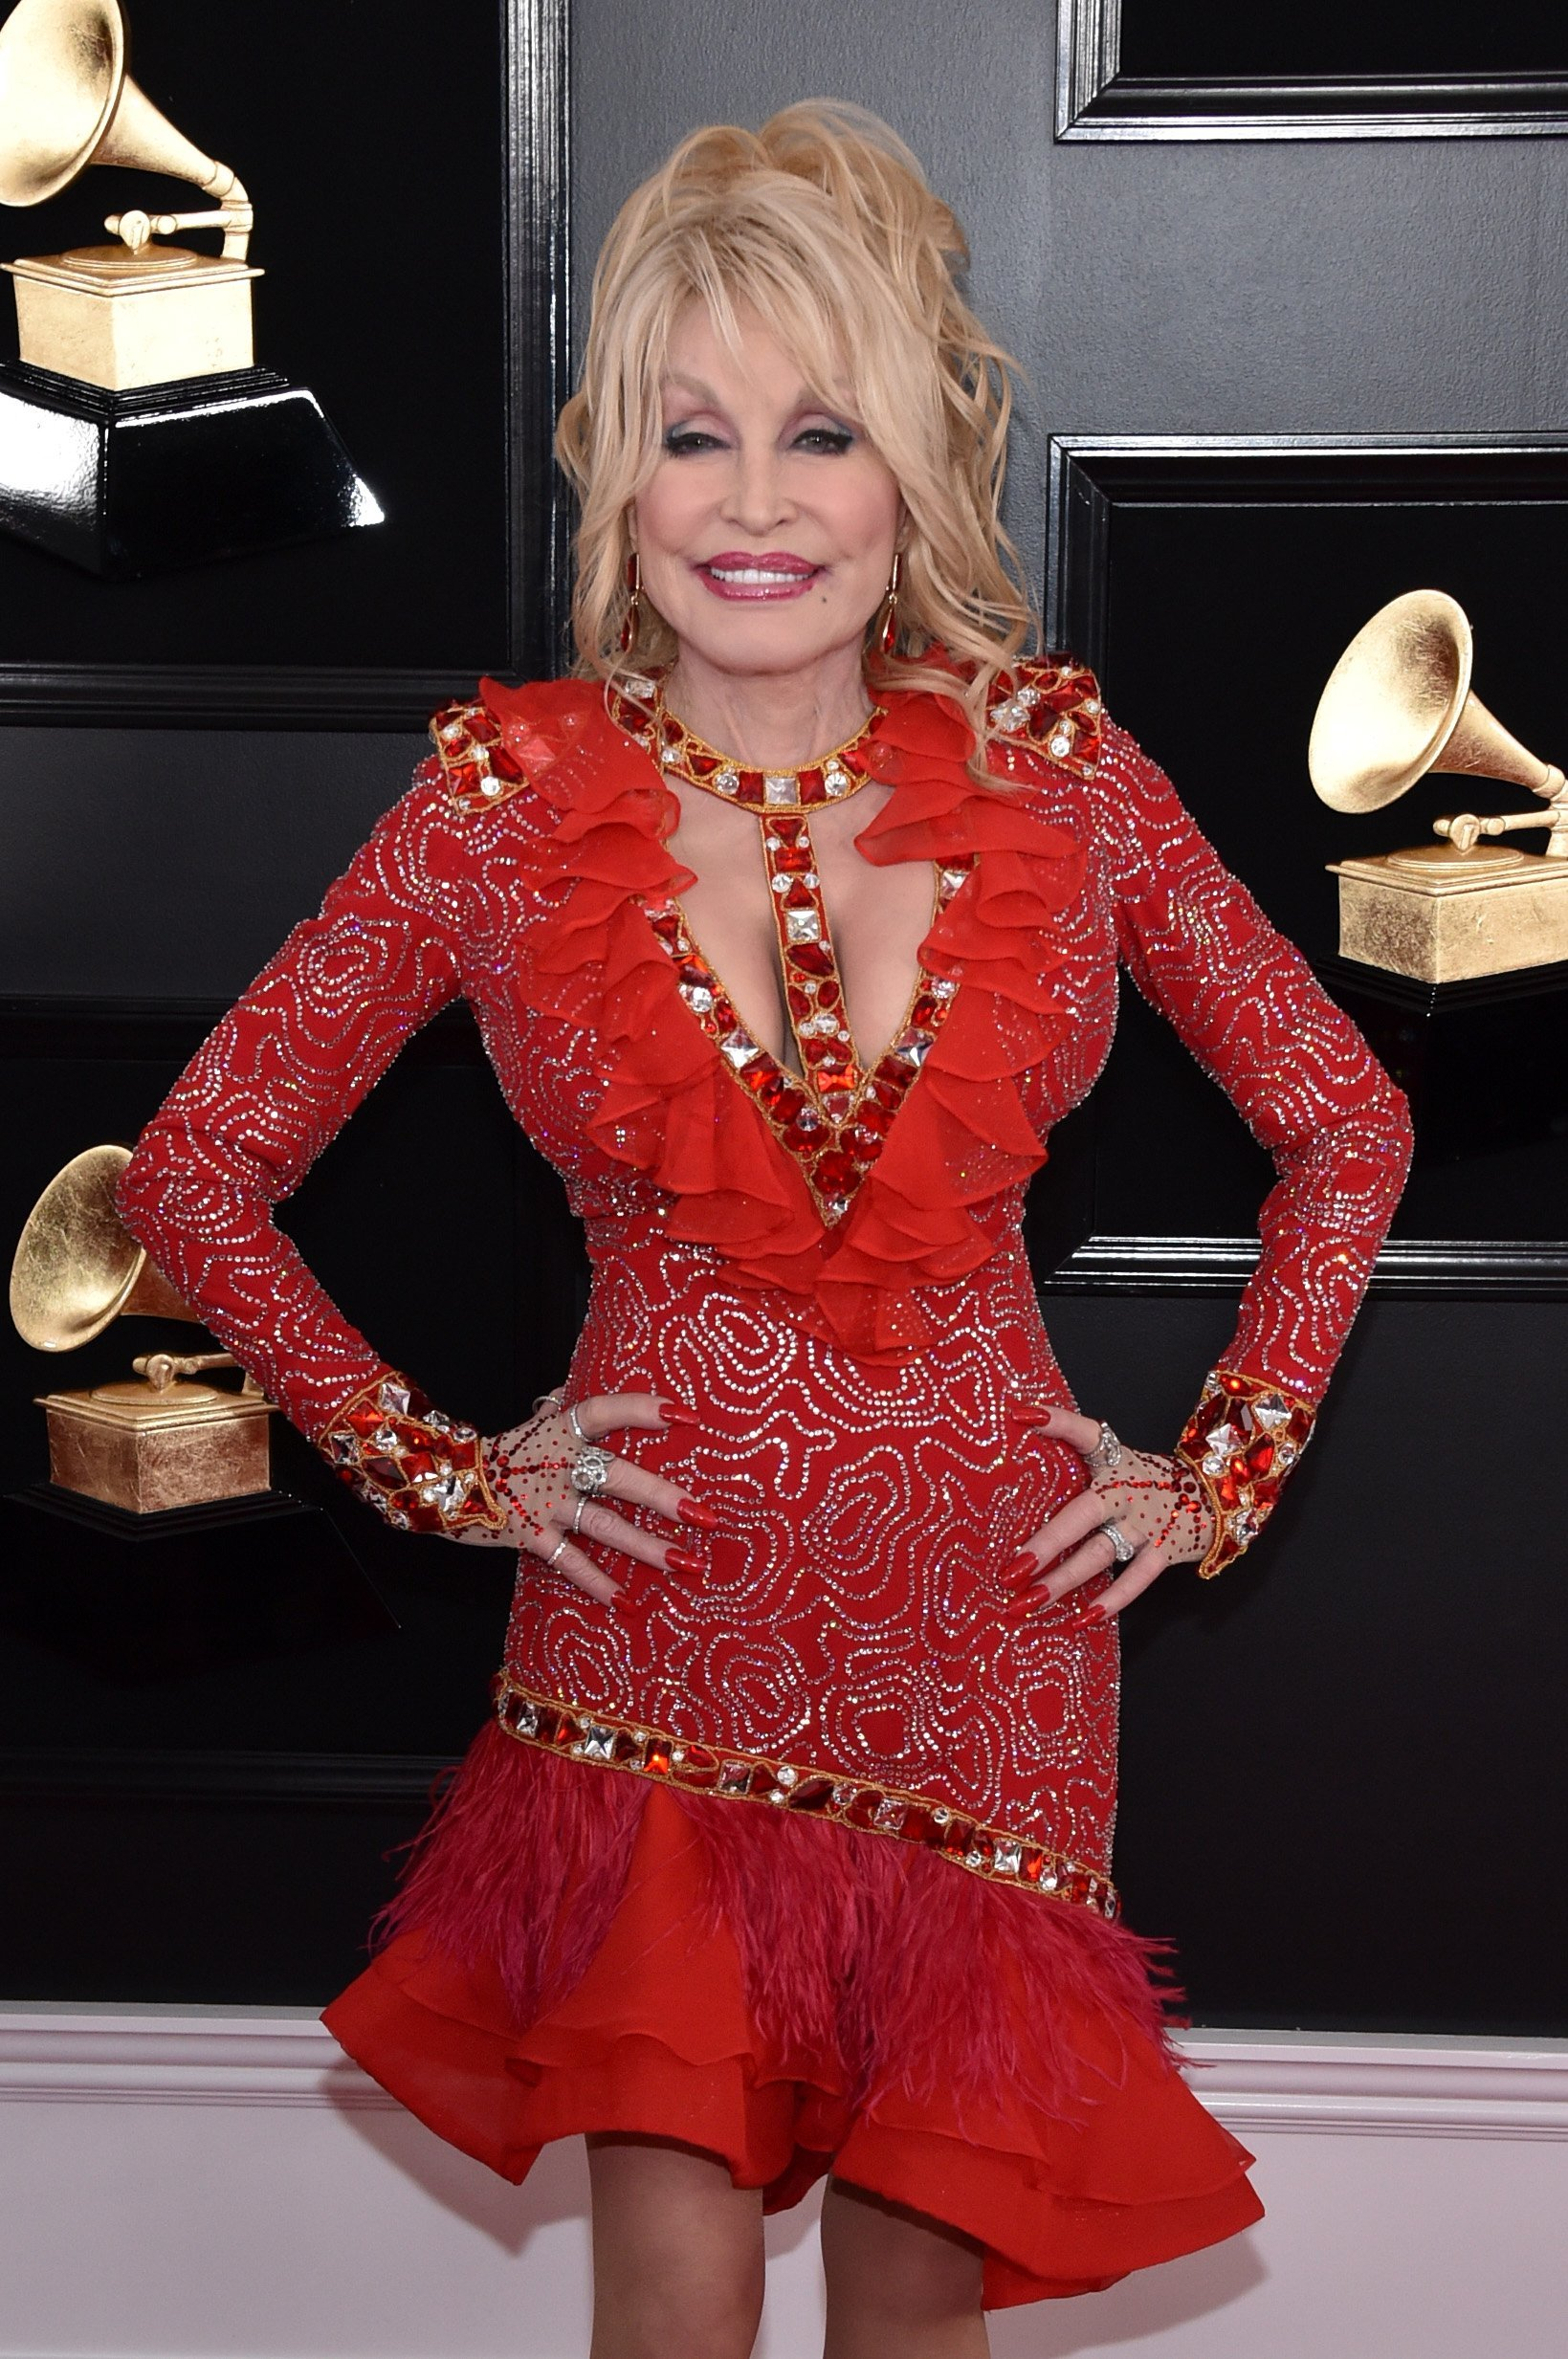 Dolly Parton at the 61st Annual Grammy Awards at Staples Center on February 10, 2019 | Photo: Getty Images.